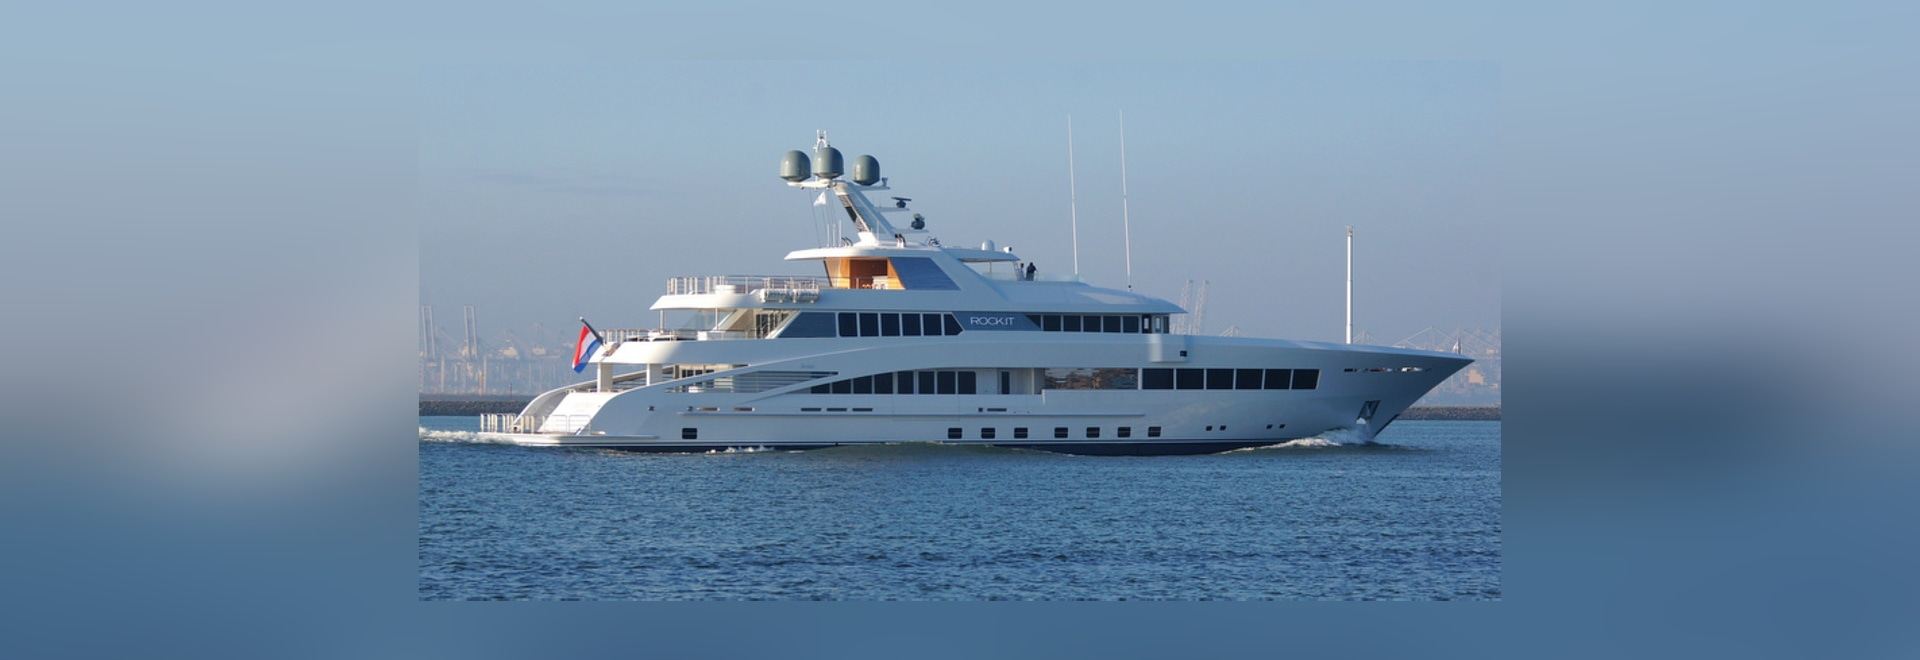 60m Feadship mega yacht ROCK.IT (hull 687) completes sea trials